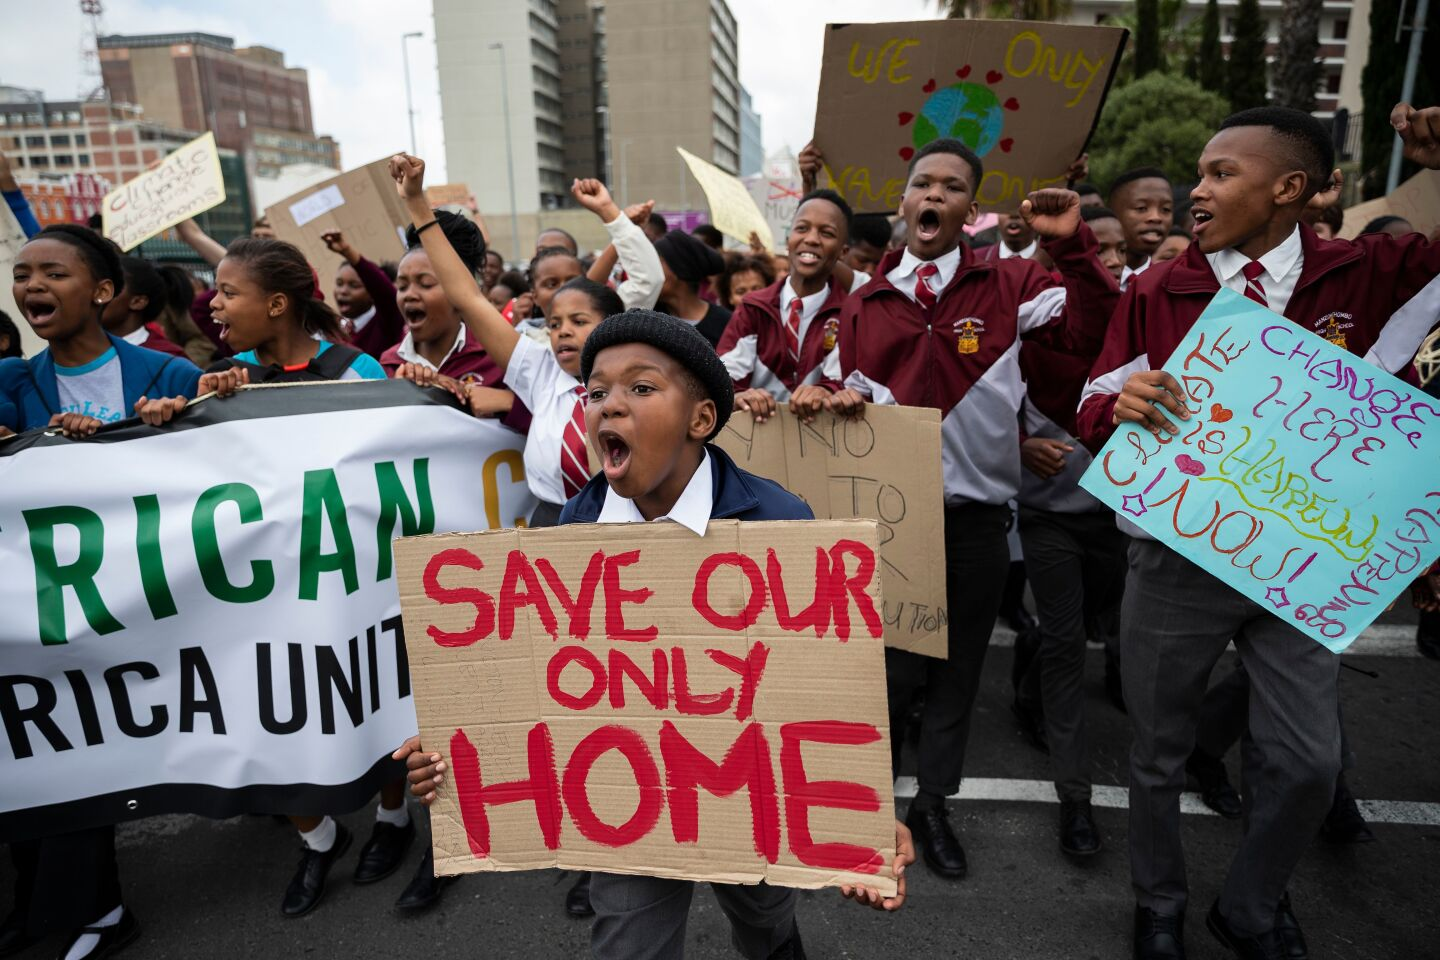 Cape Town Global Climate Strike, South Africa - 20 Sep 2019